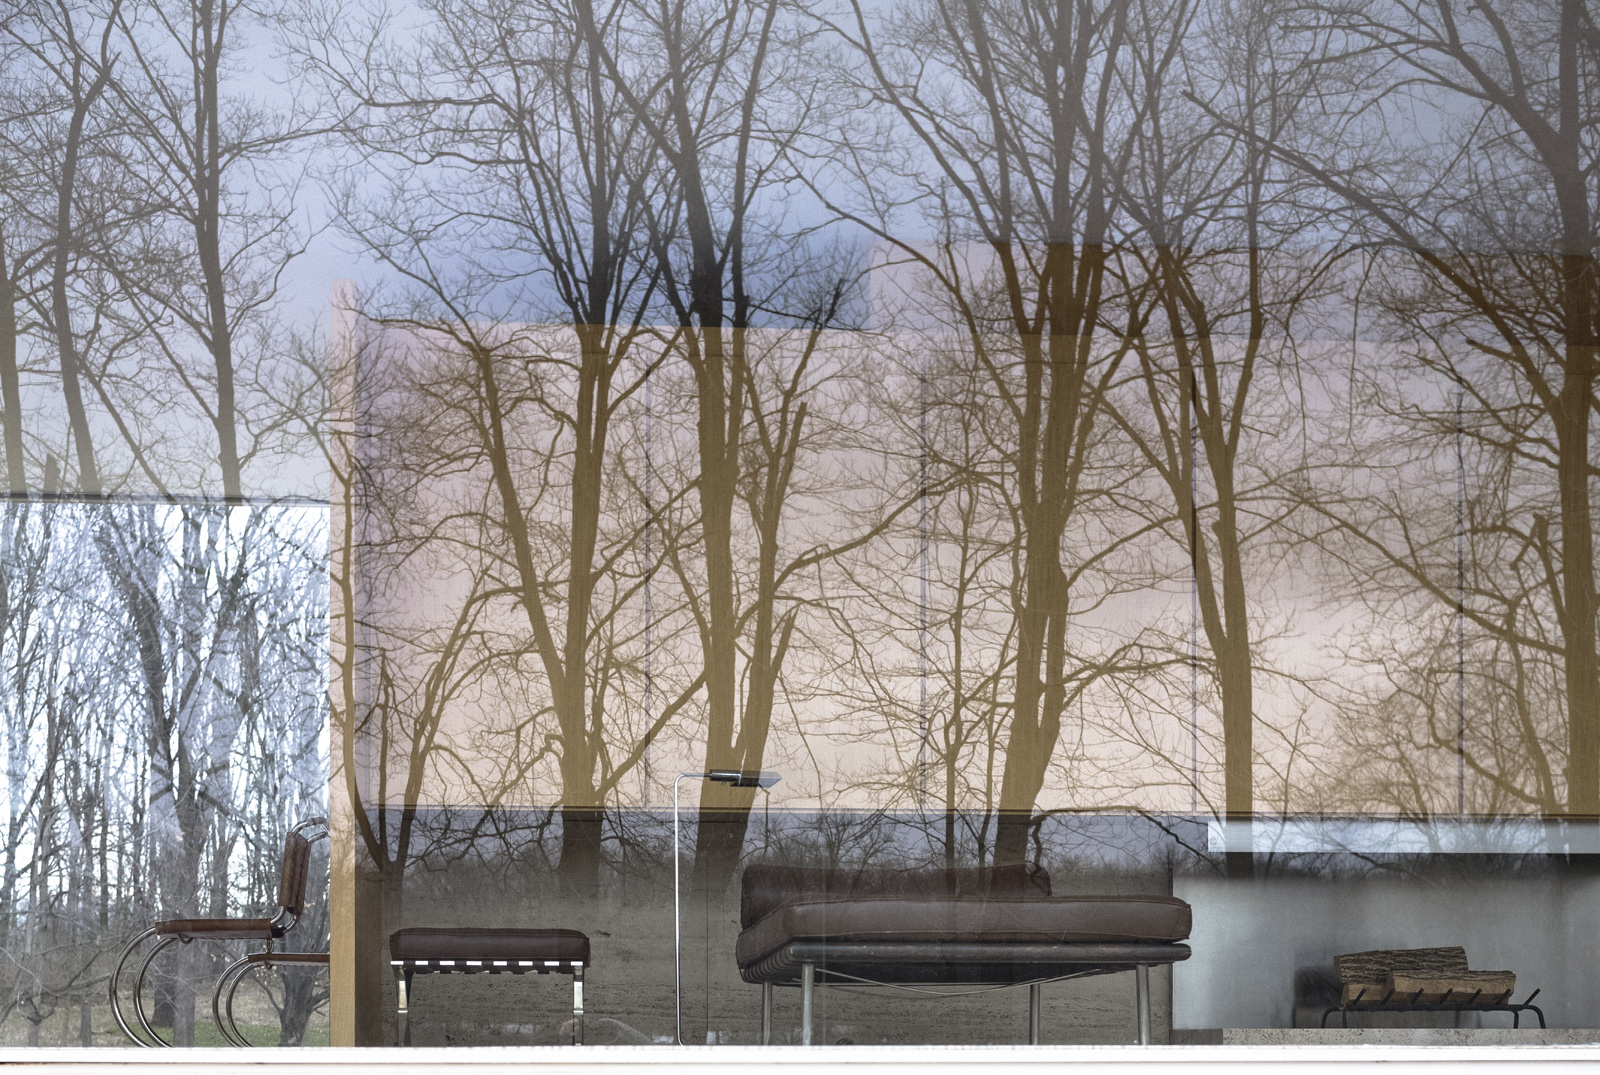 Farnsworth House 16 Plano 2019